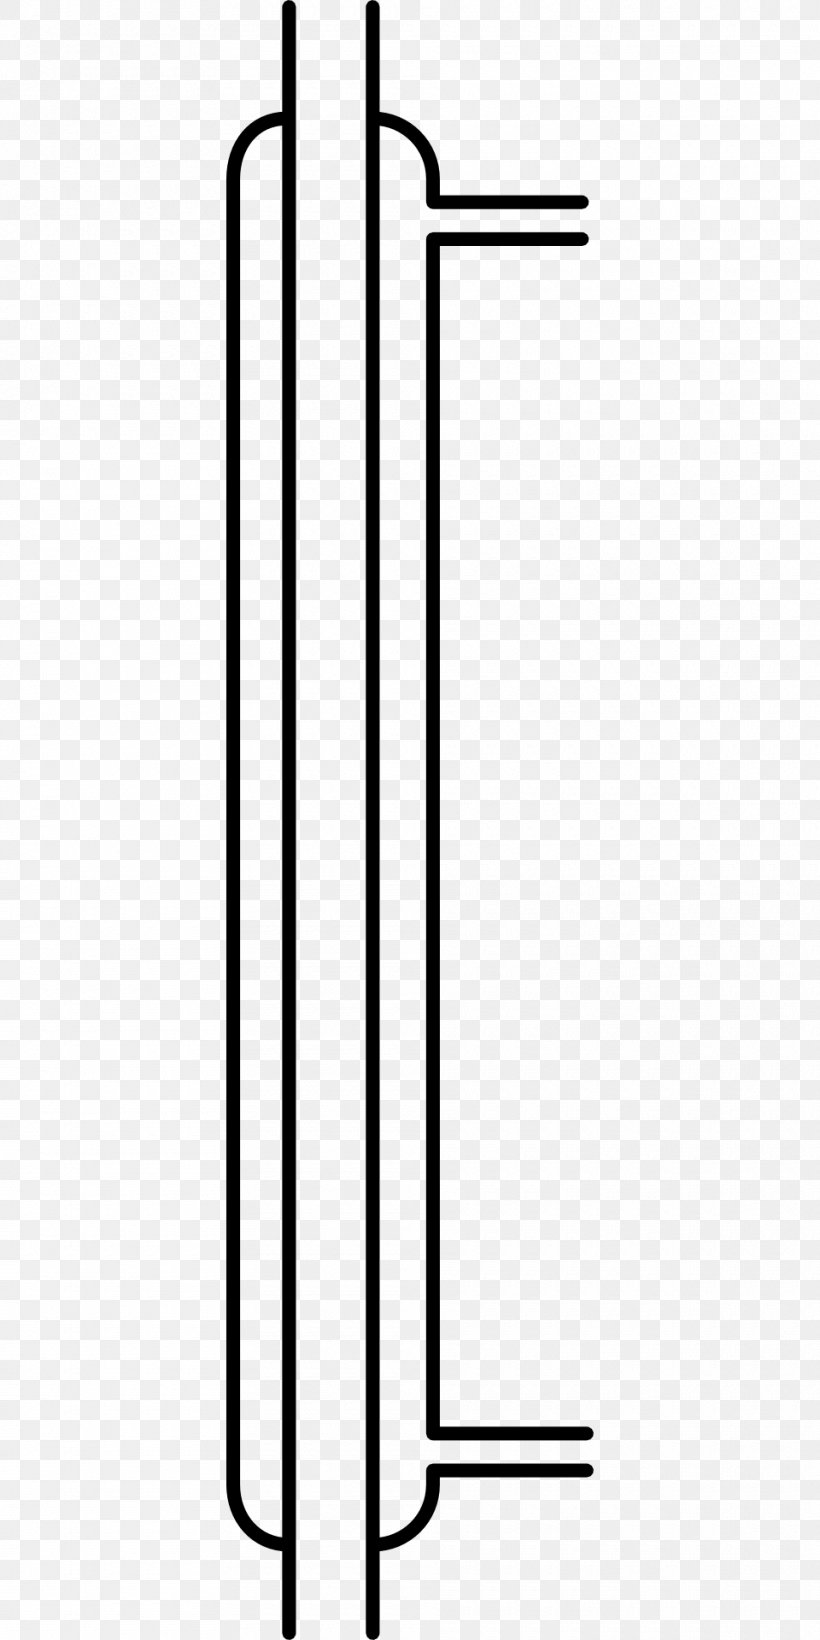 Condenser Drawing Condensation, PNG, 960x1920px, Condenser, Area, Bathroom Accessory, Black And White, Capacitor Download Free